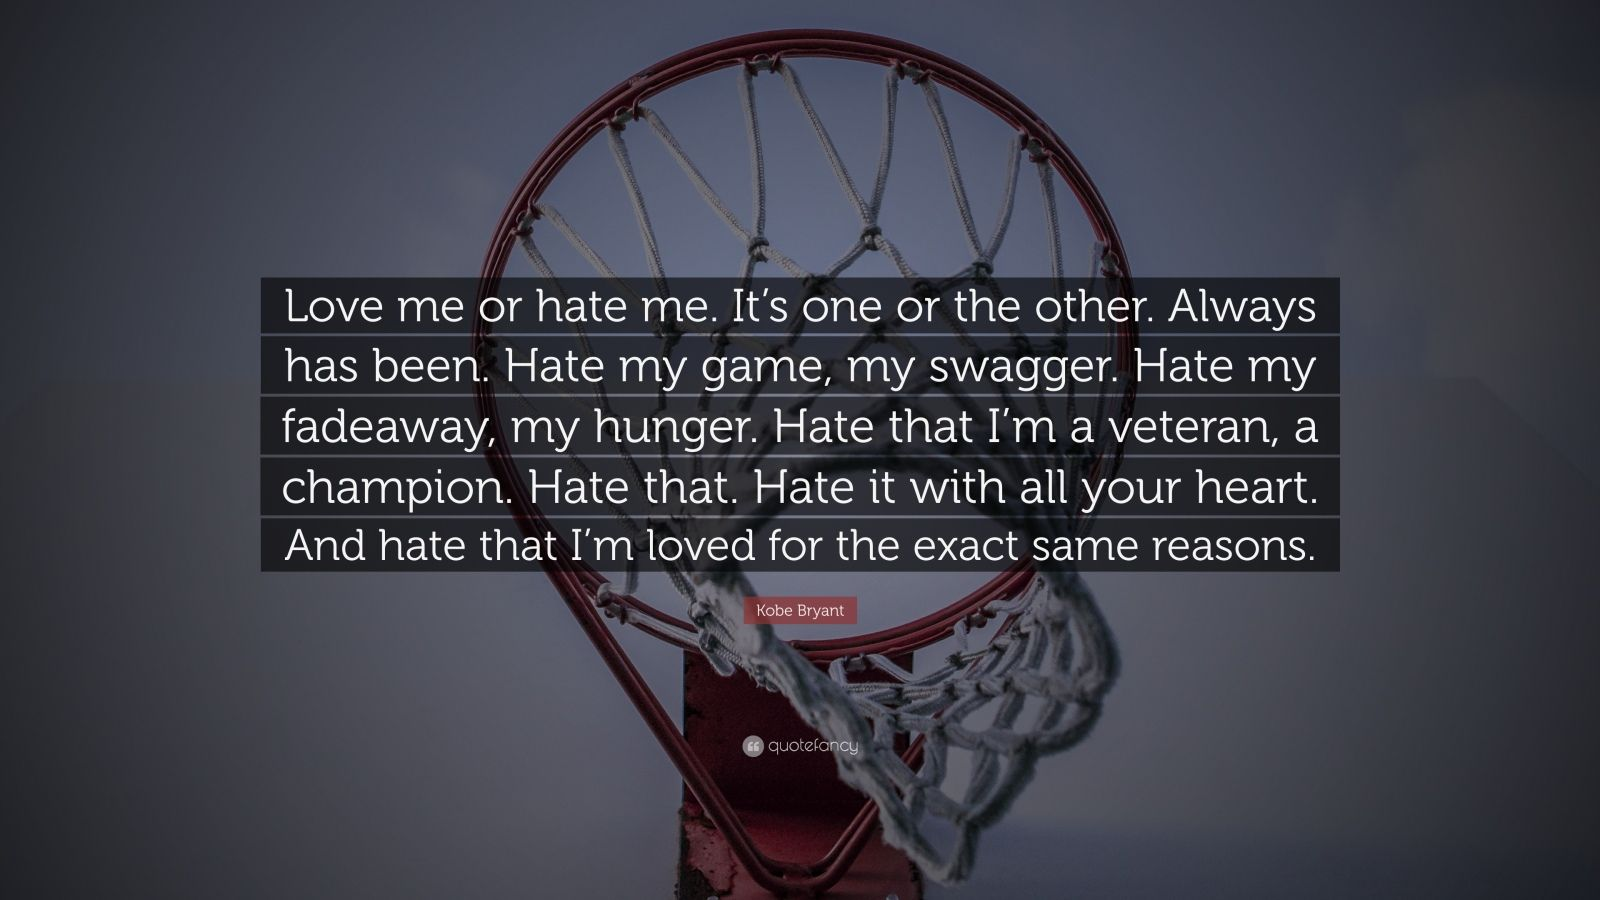 "Kobe Bryant Quote: ""Love me or hate me. It's one or the other. Always has been. Hate my game, my swagger. Hate my fadeaway, my hunger. Hate that I'm a veteran, a champion. Hate that. Hate it with all your heart. And hate that I'm loved for the exact same reasons."""